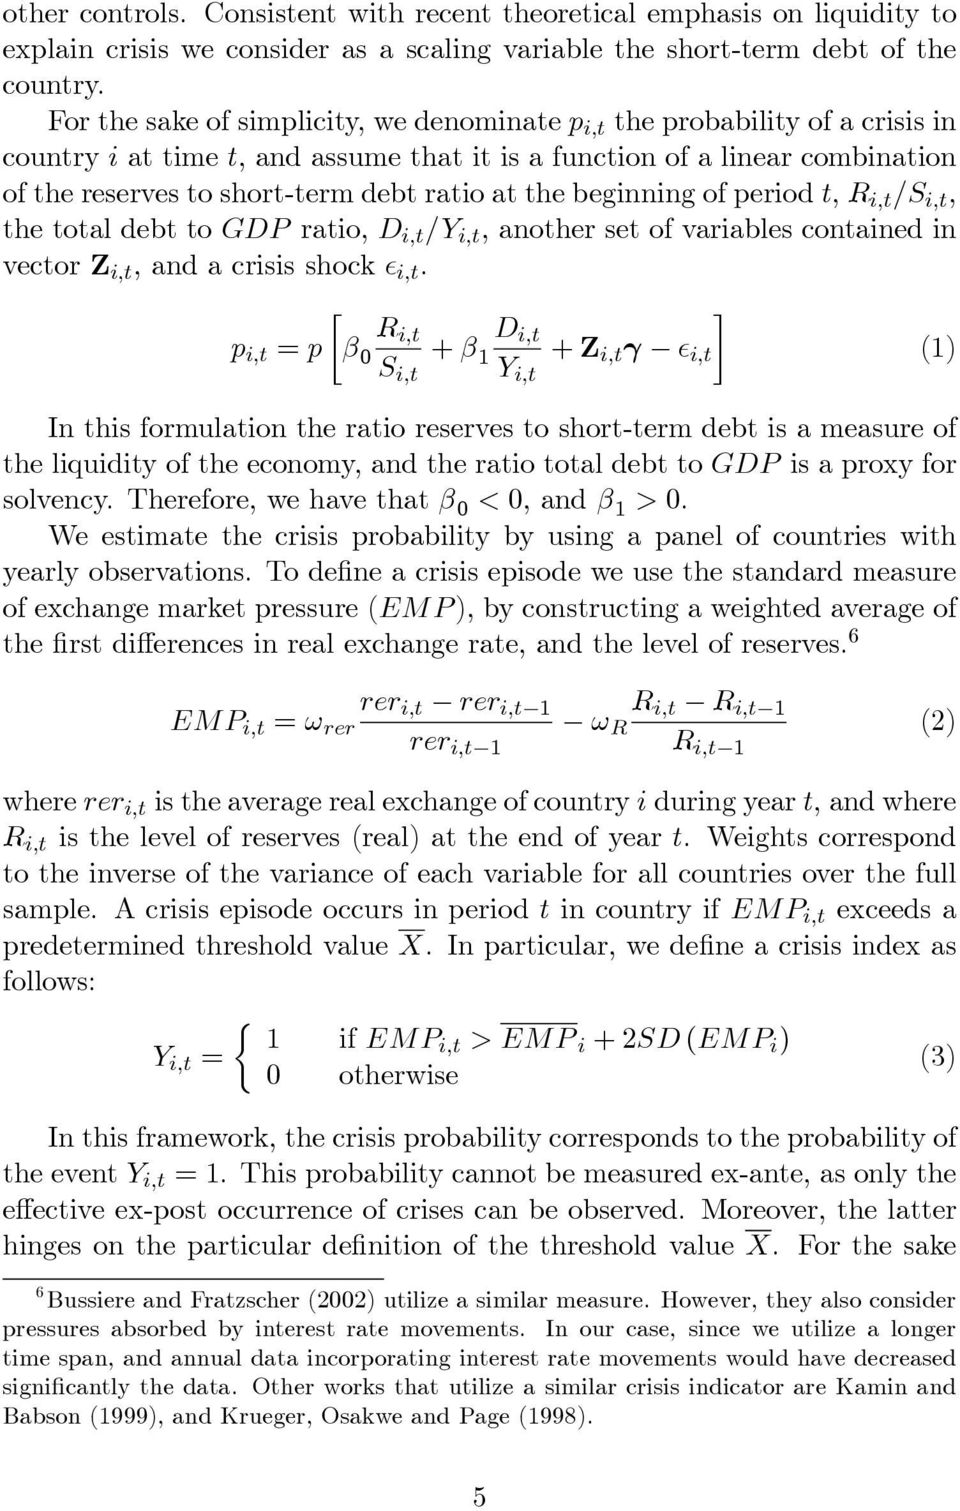 at the beginning of period t, R i,t /S i,t, the total debt to GDP ratio, D i,t /Y i,t, another set of variables contained in vector Z i,t, and a crisis shock i,t.